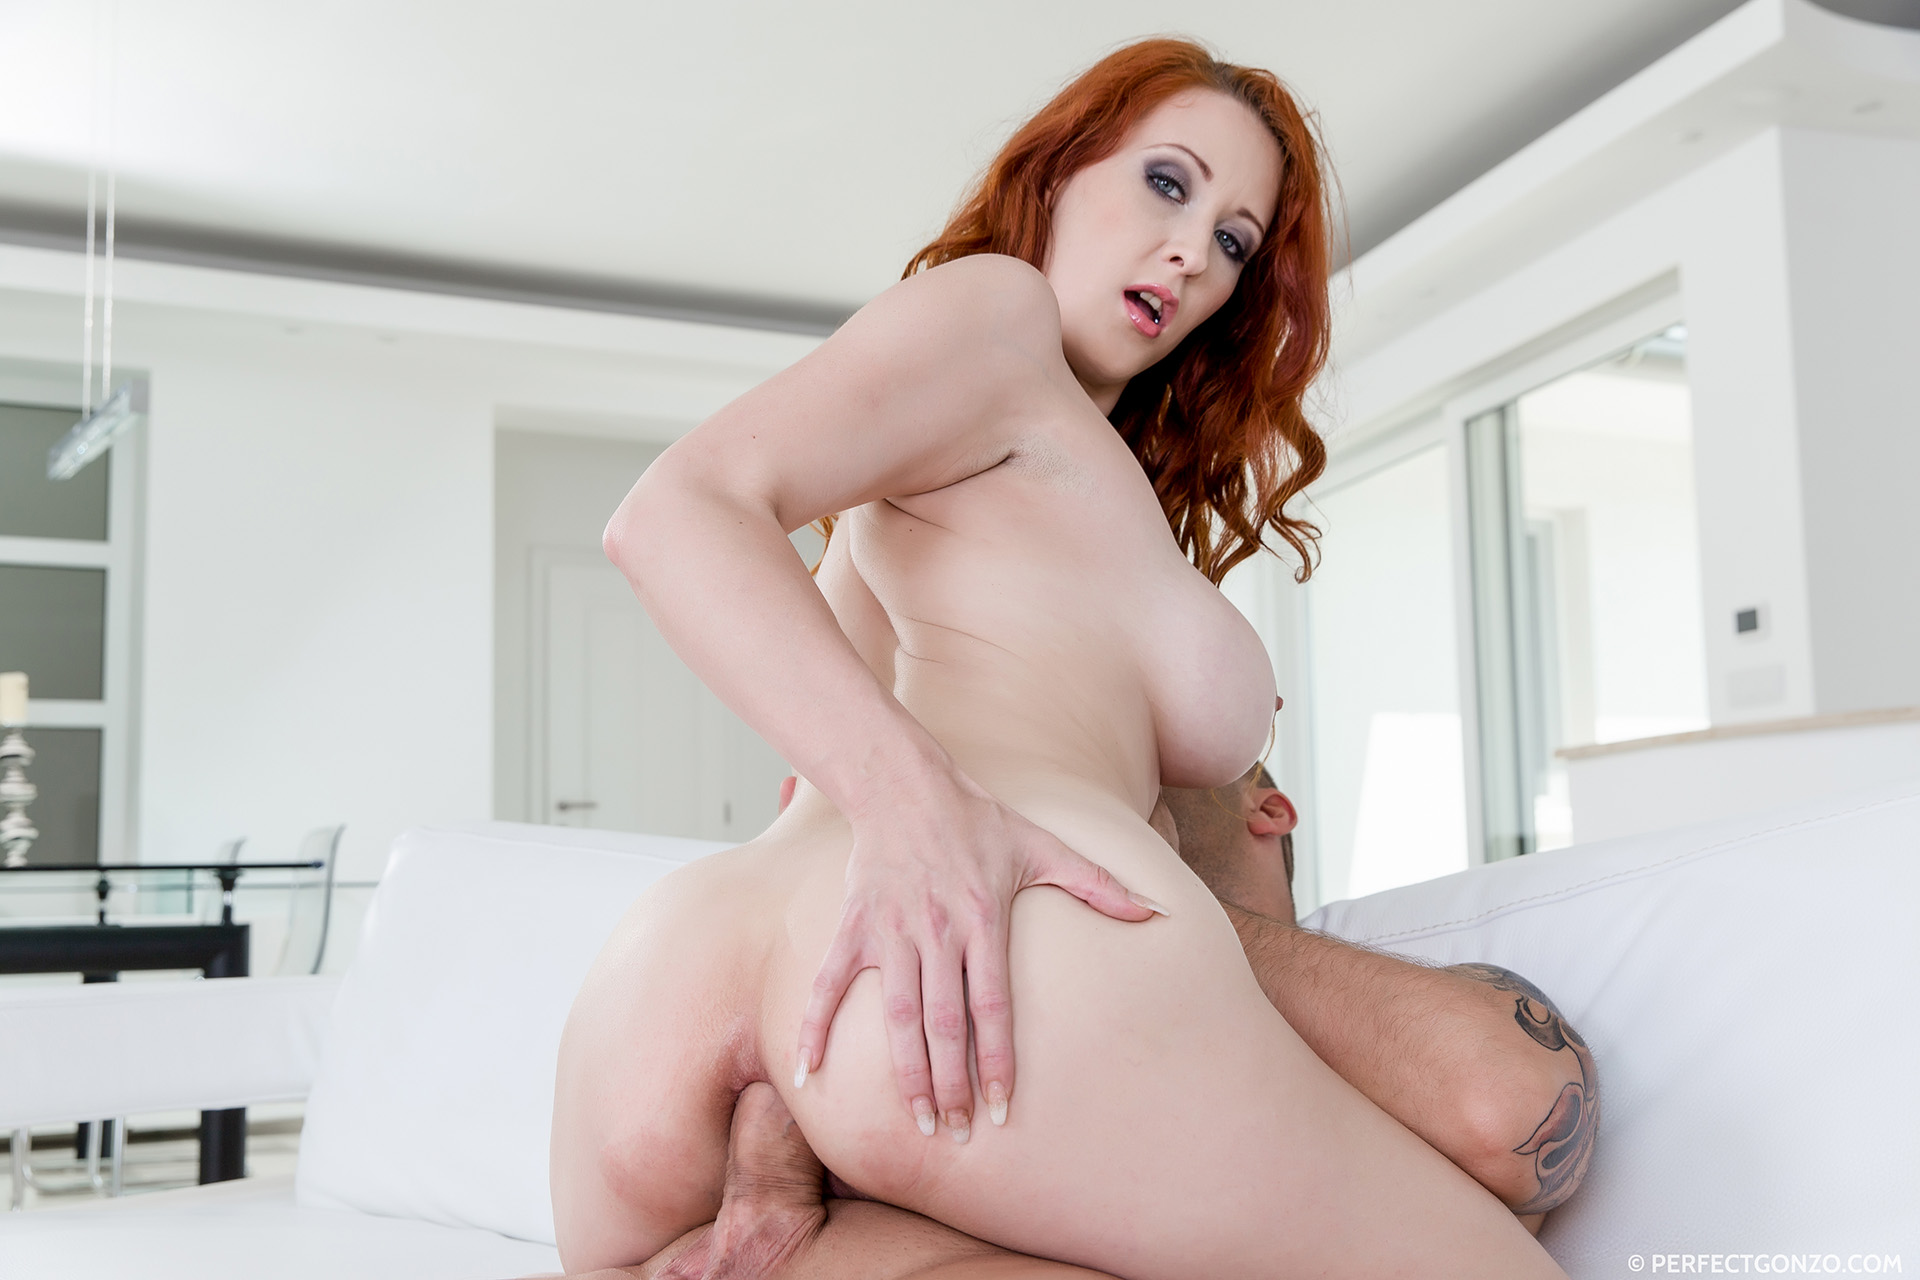 Blacked megan rain gets dpd by sugar daddy and his friend - 2 part 9